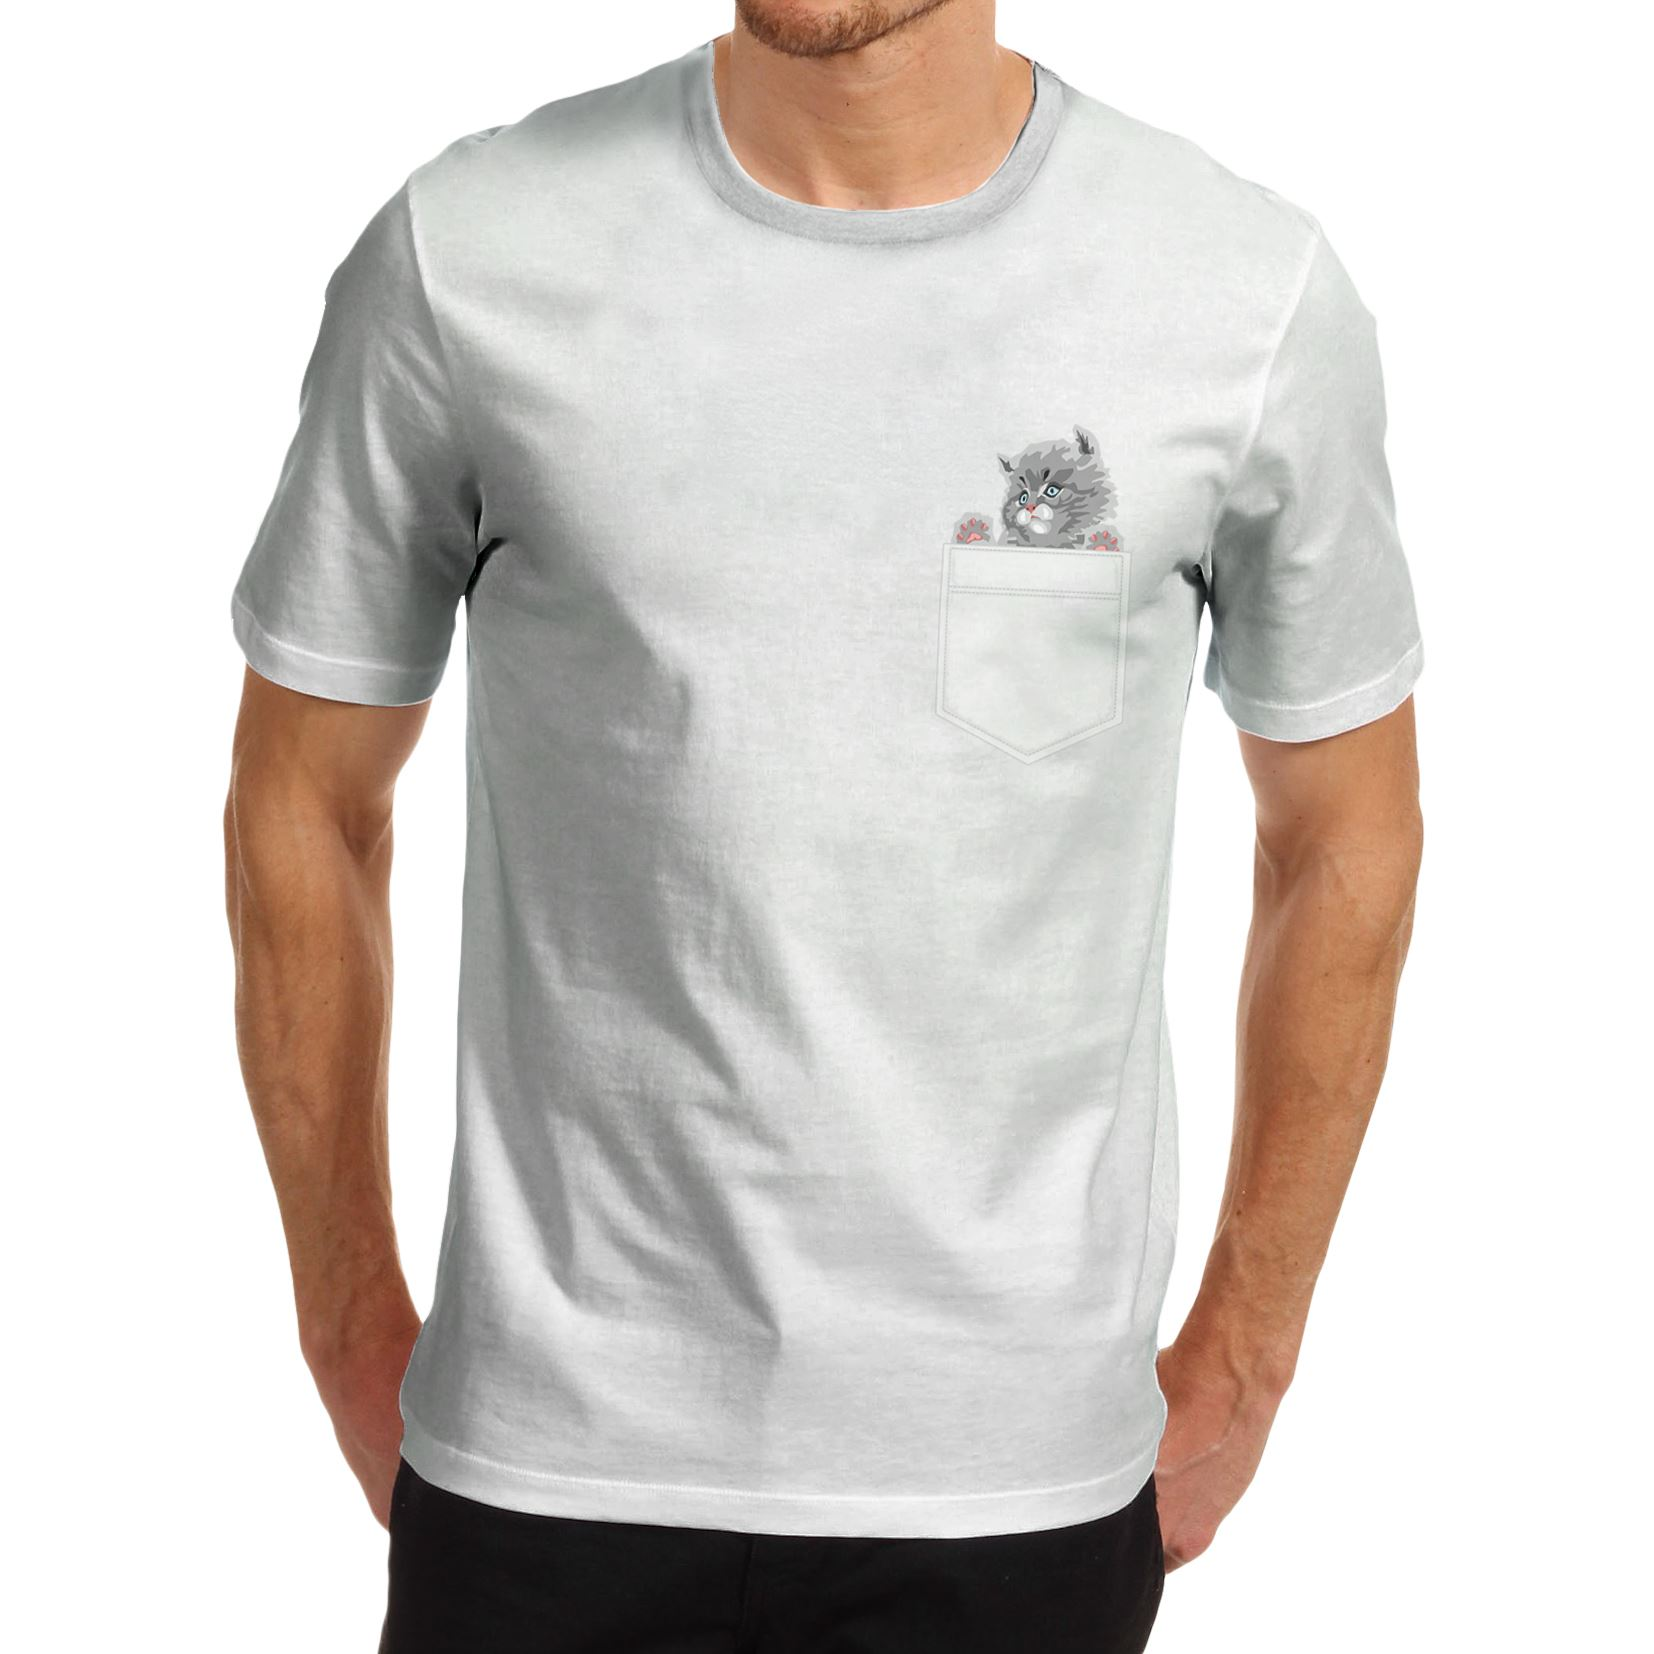 Men 39 s cat in a pocket cute funny graphic t shirt ebay for Graphic design t shirts uk